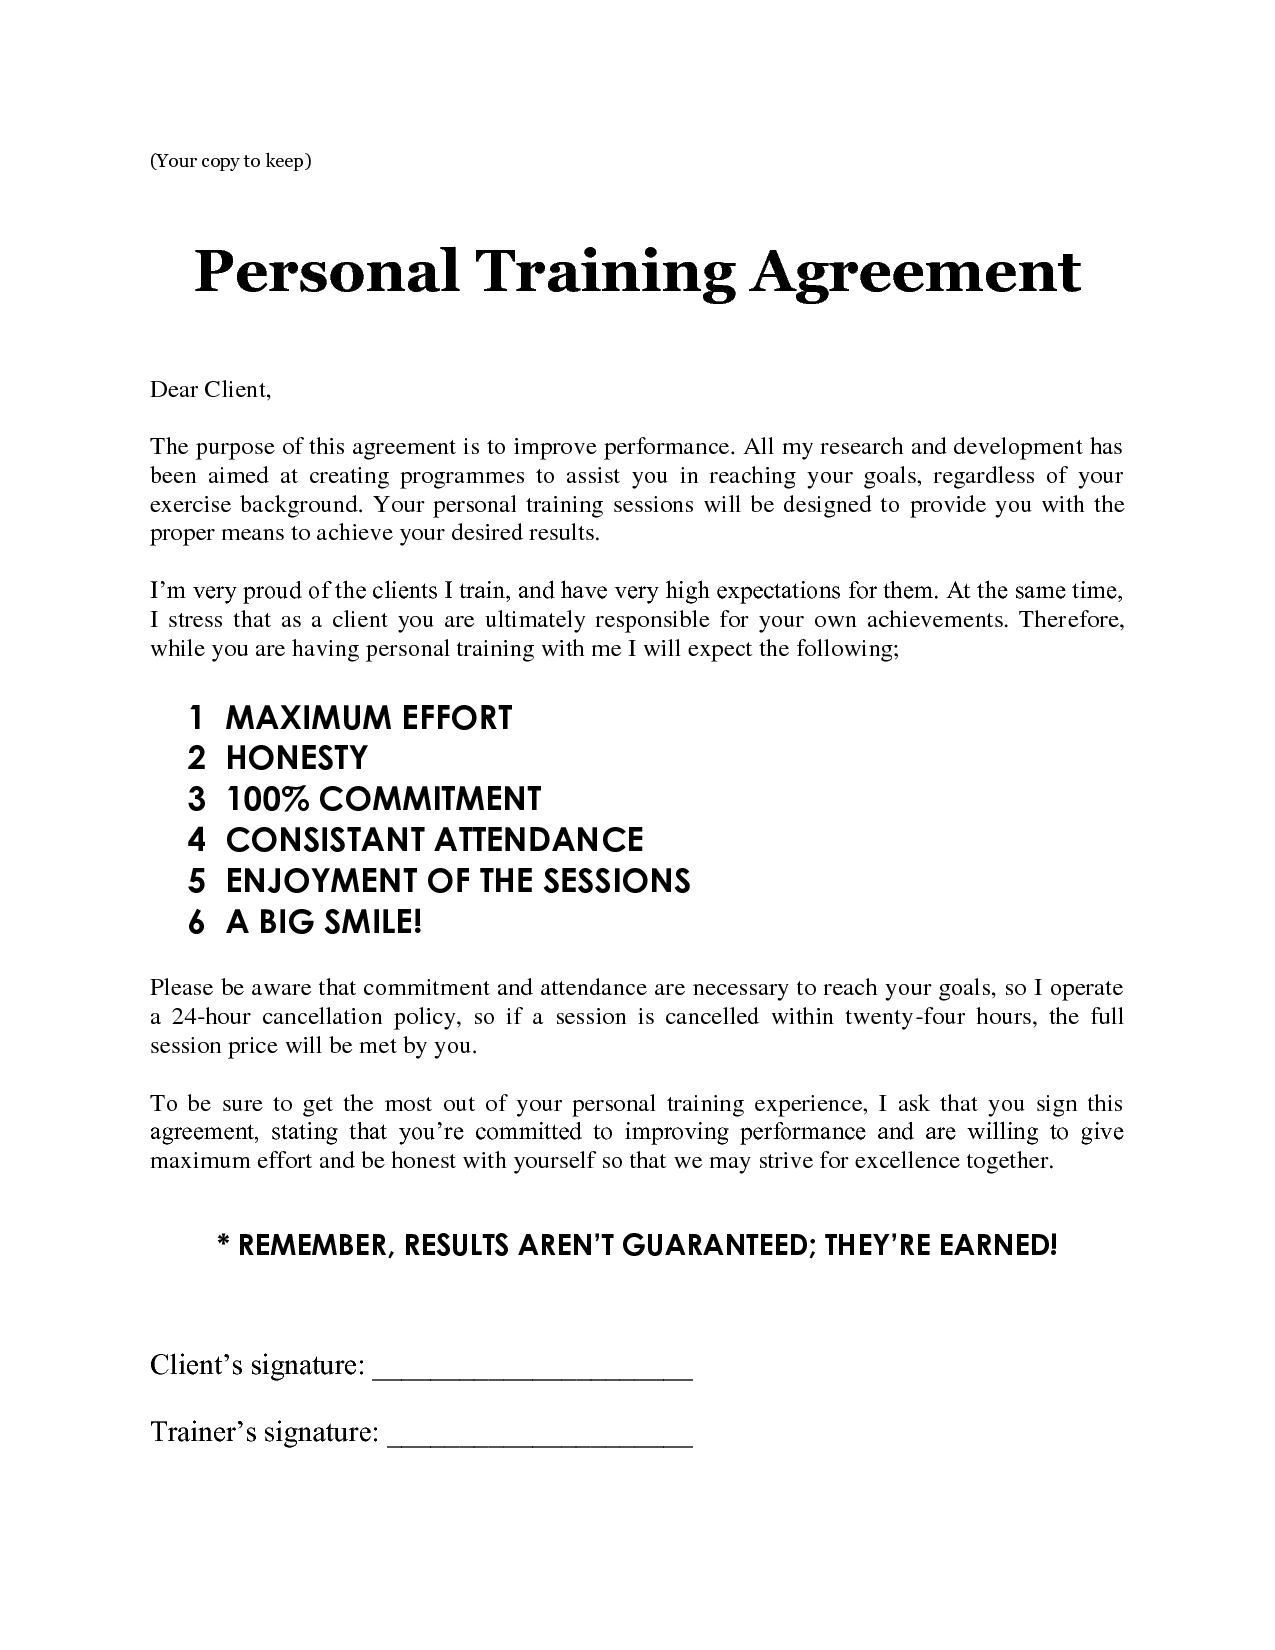 Personal Training Contract Free Printable Documents